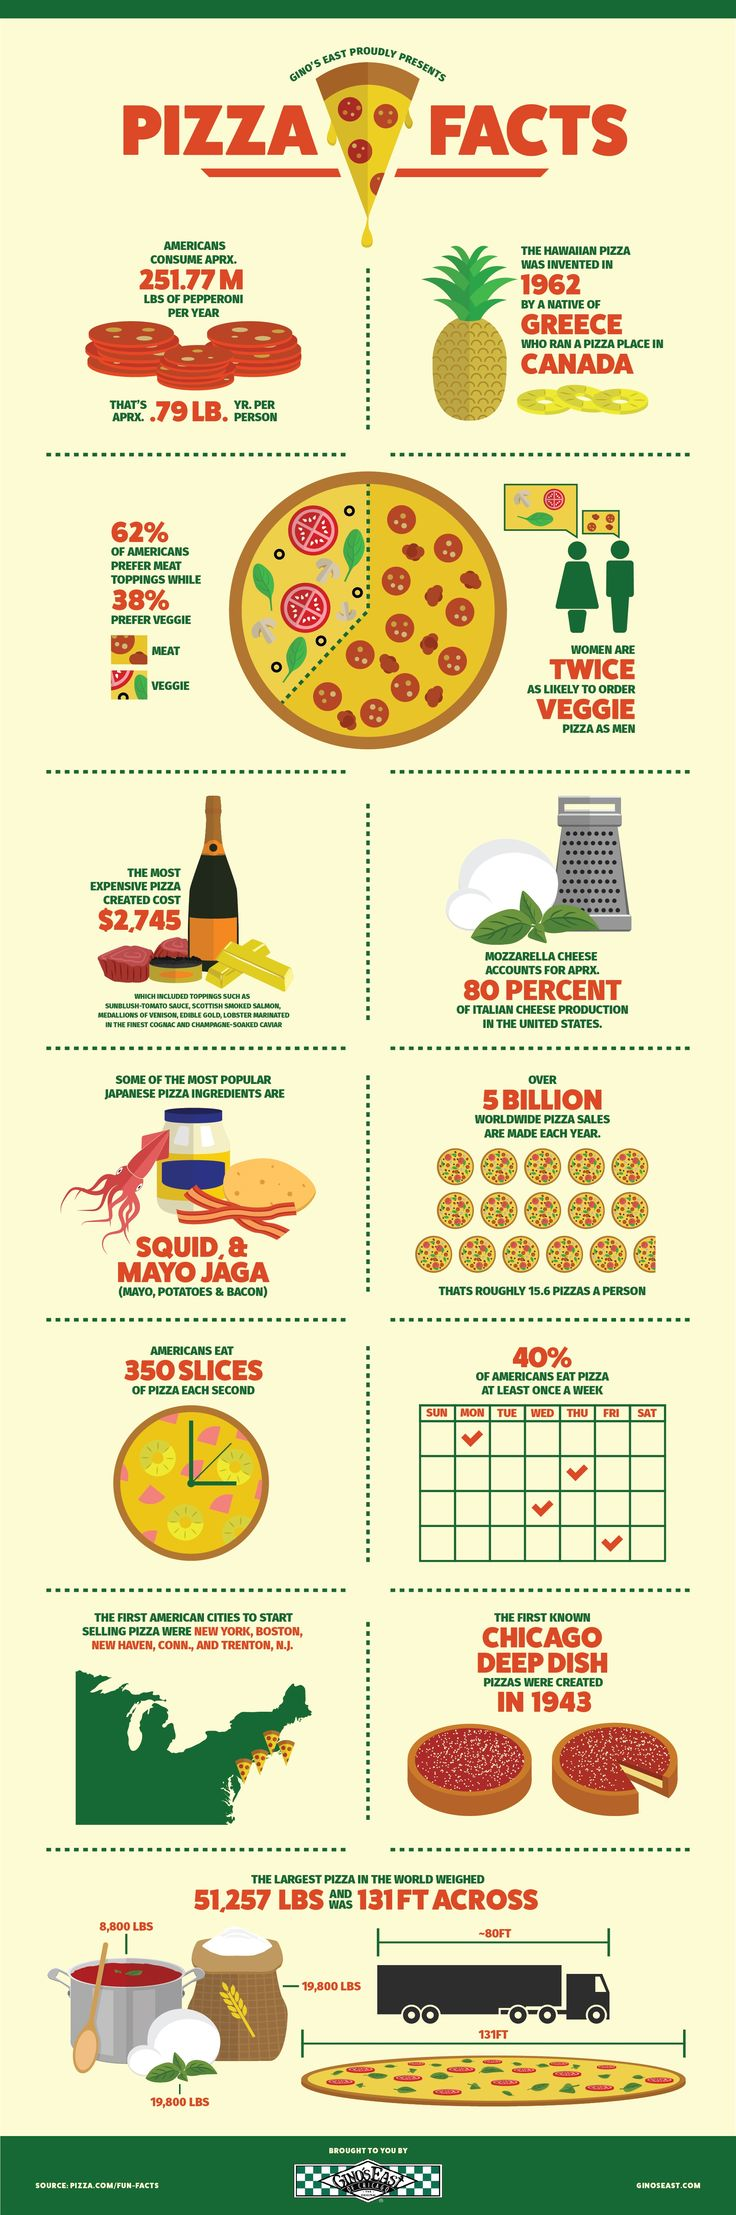 #PIzza Facts - Do you fancy an infographic?  There are a lot of them online, but if you want your own please visit http://www.linfografico.com/prezzi/  Online girano molte infografiche, se ne vuoi realizzare una tutta tua visita http://www.linfografico.com/prezzi/